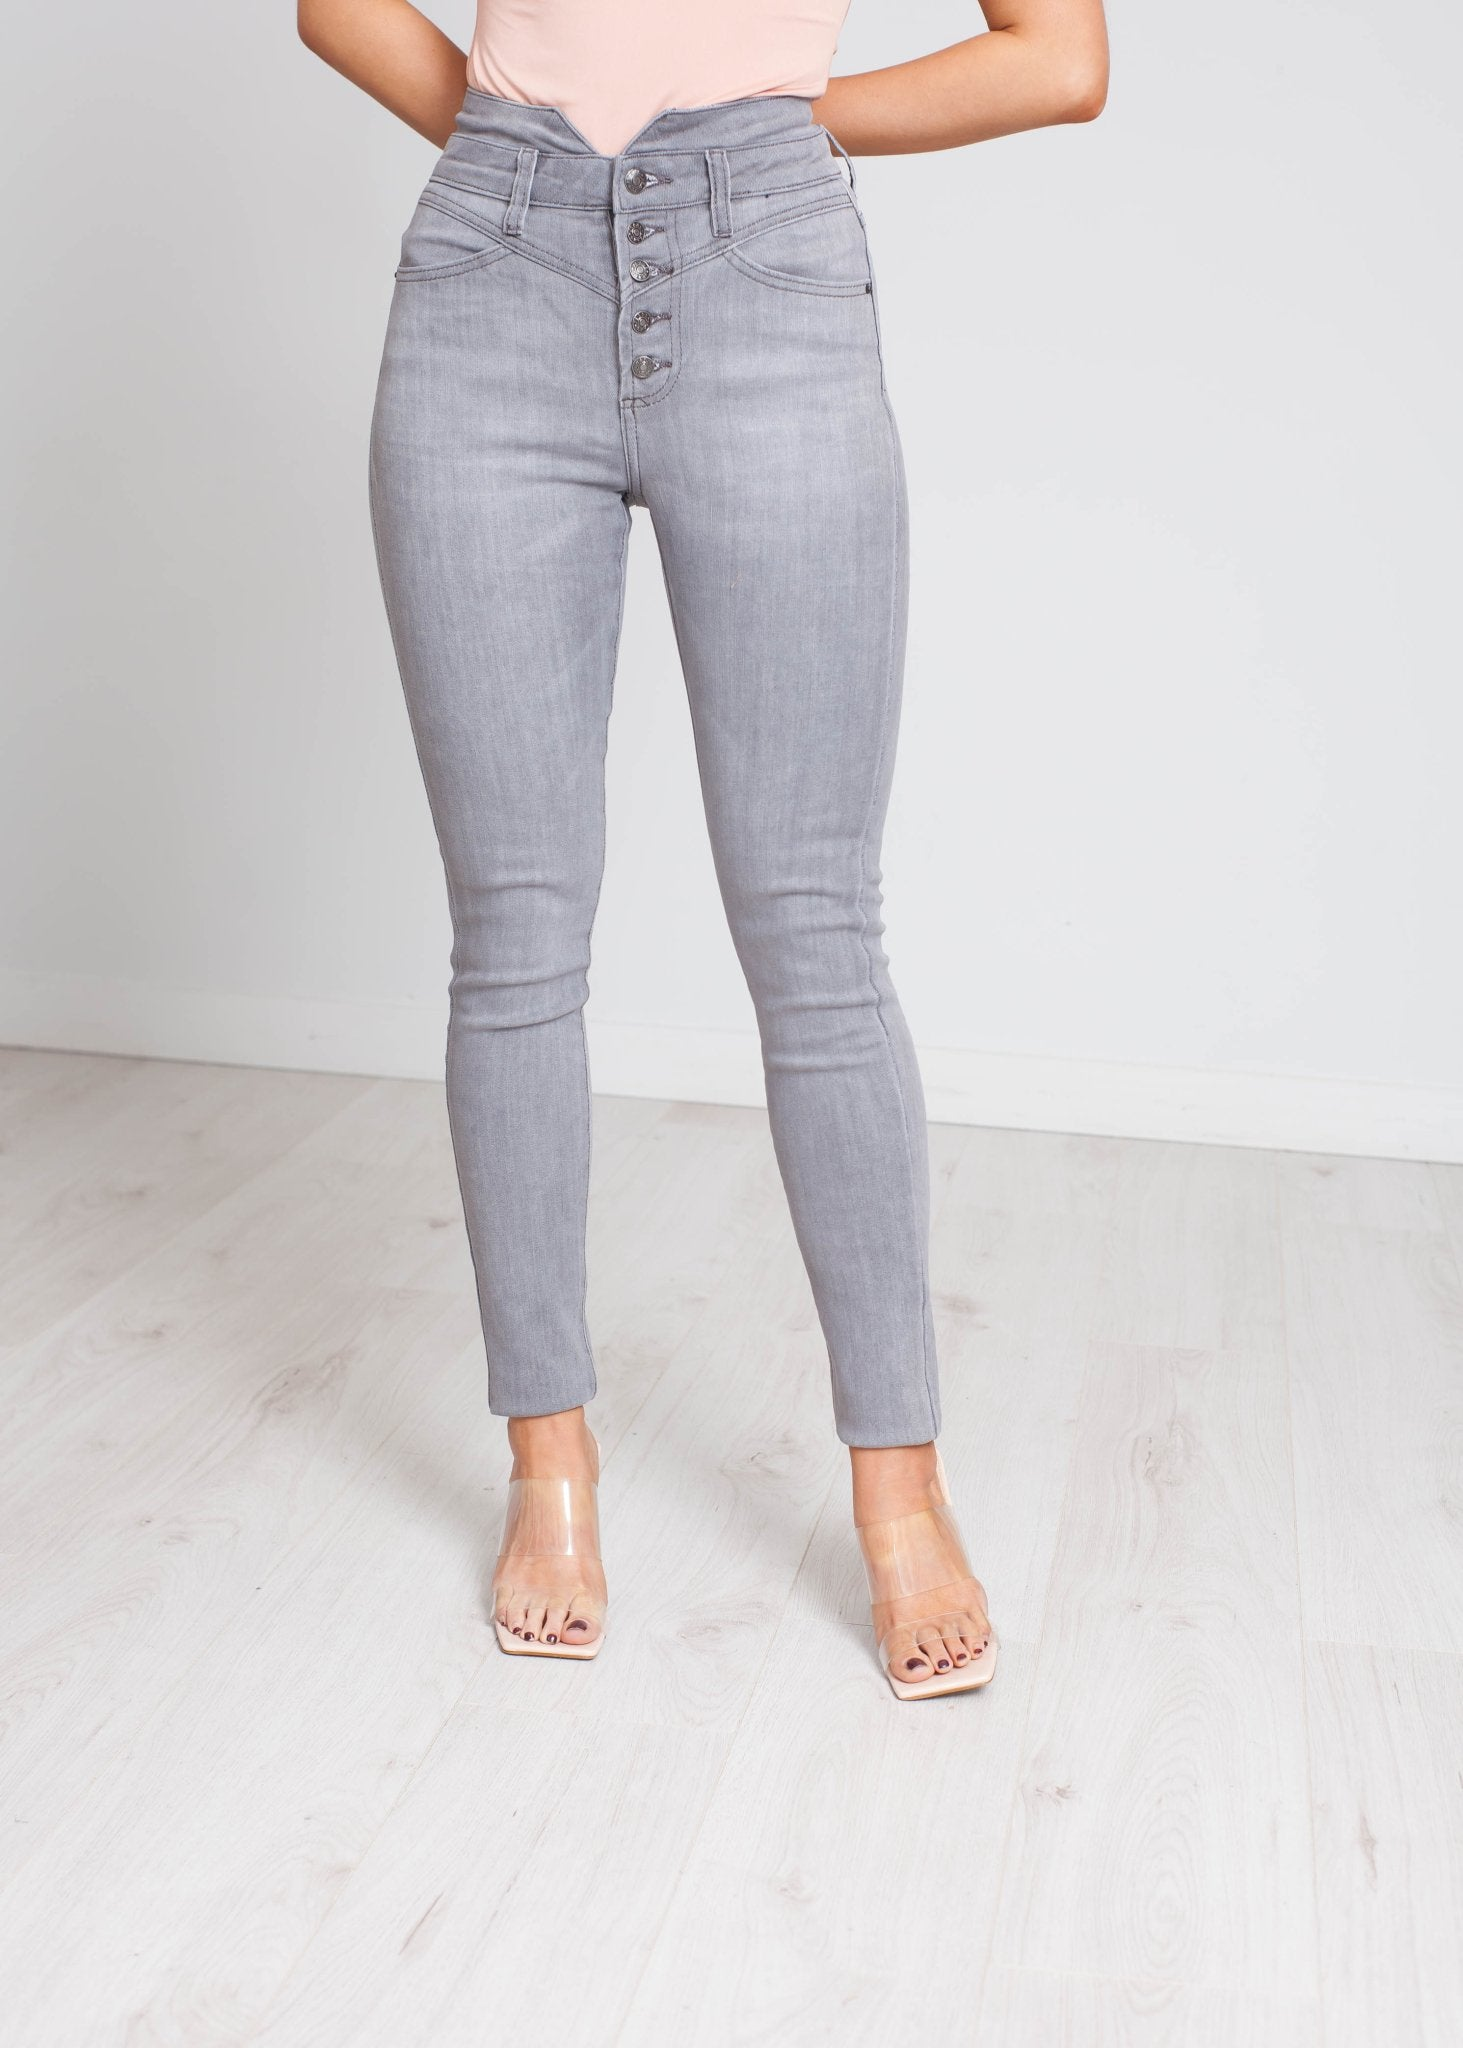 Camilla High Waist Button Jean In Grey - The Walk in Wardrobe